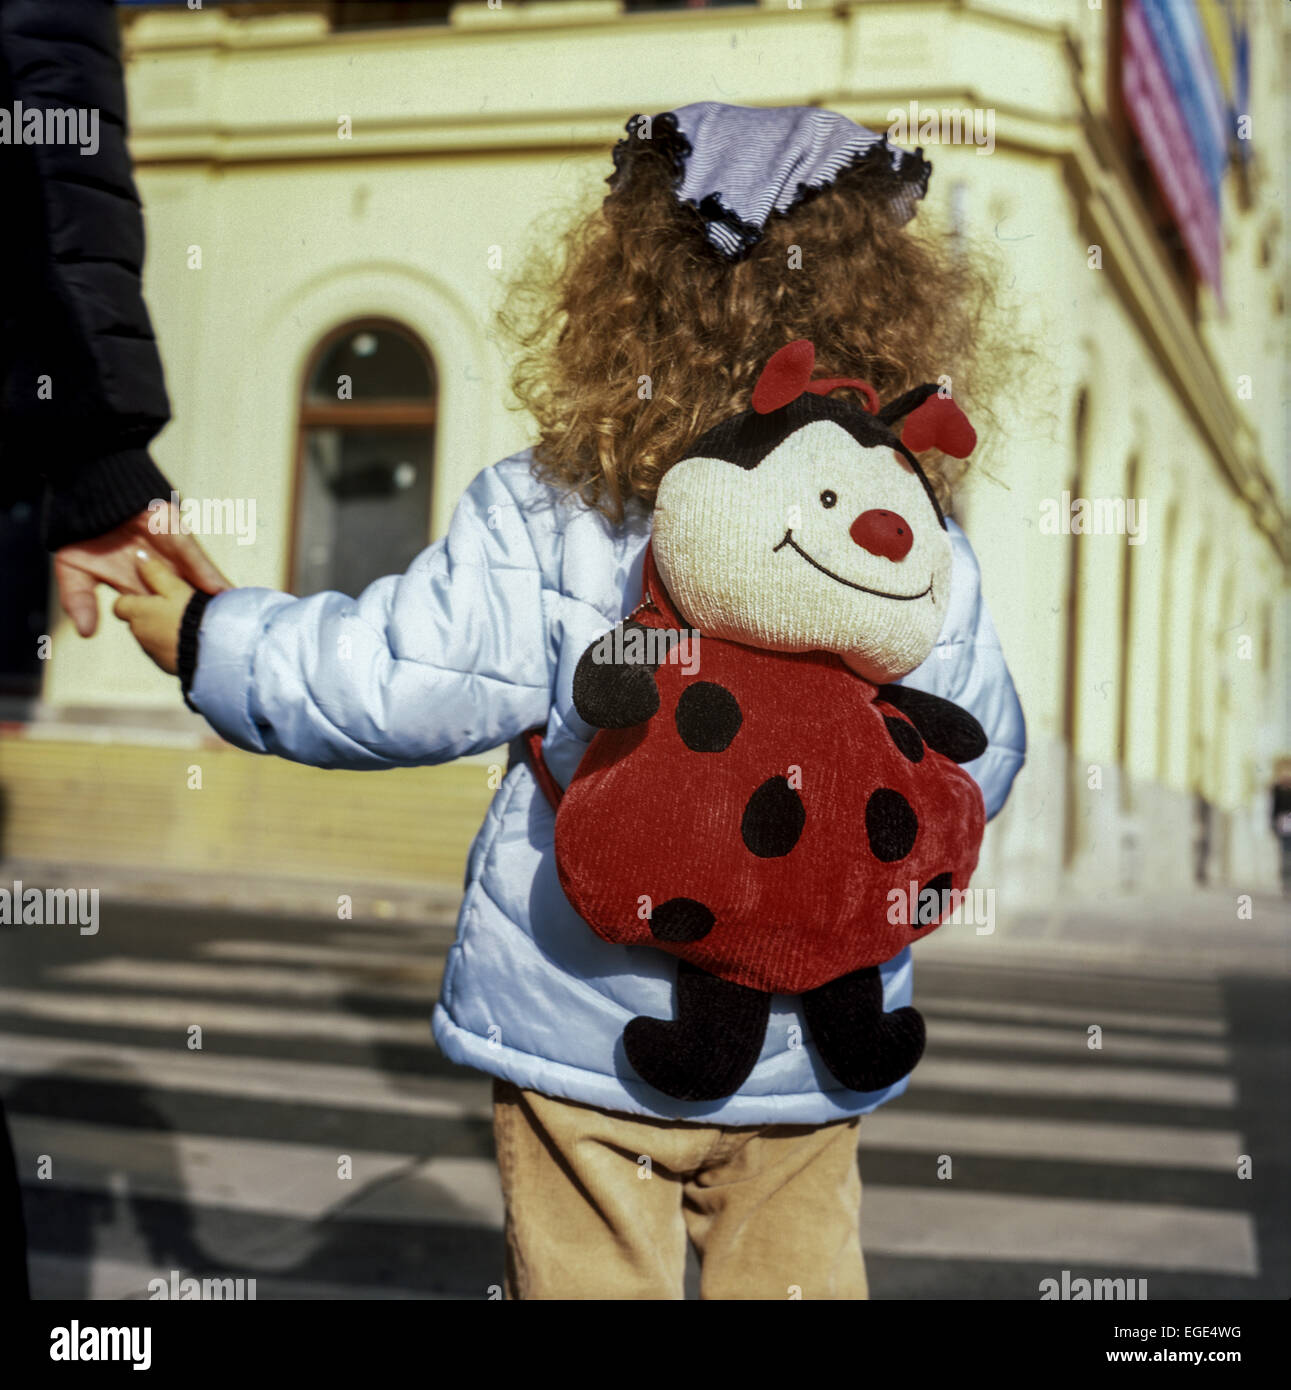 child on crosswalk - Stock Image